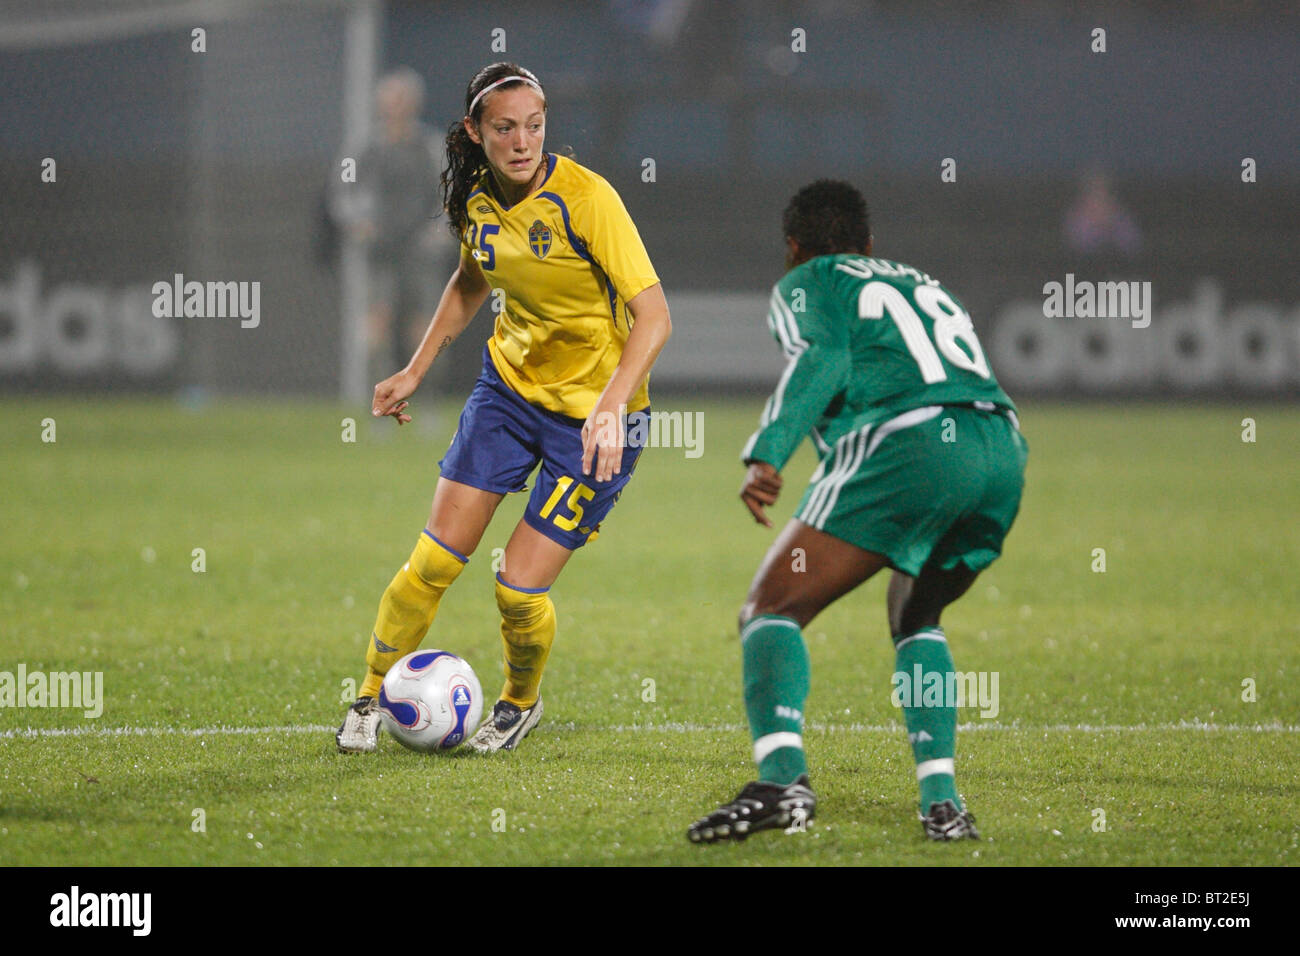 Therese Sjogran of Sweden (15) looks for space during a 2007 Women's World Cup soccer match against Nigeria. - Stock Image